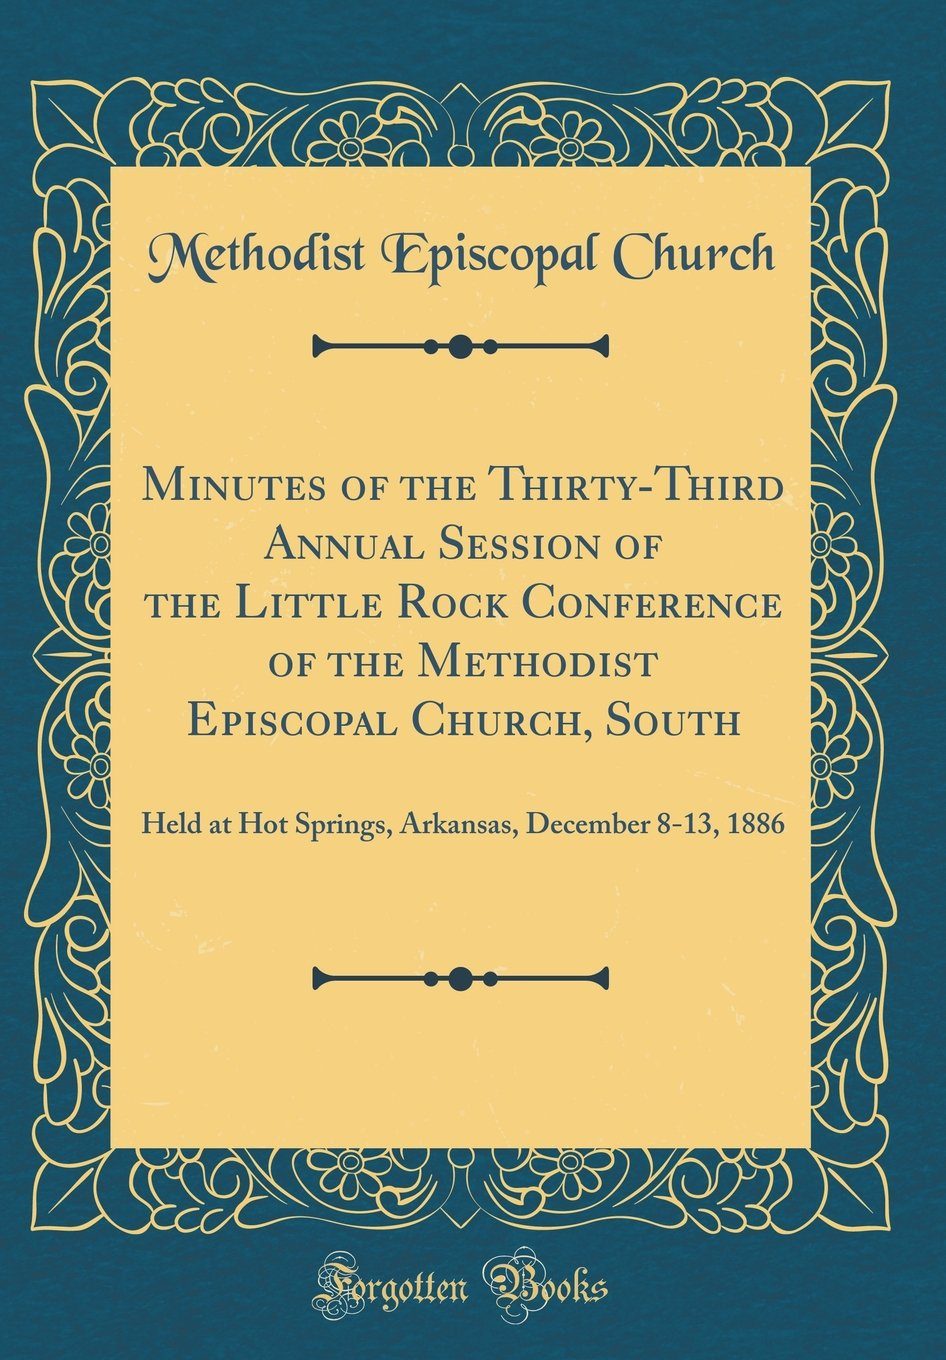 Read Online Minutes of the Thirty-Third Annual Session of the Little Rock Conference of the Methodist Episcopal Church, South: Held at Hot Springs, Arkansas, December 8-13, 1886 (Classic Reprint) pdf epub